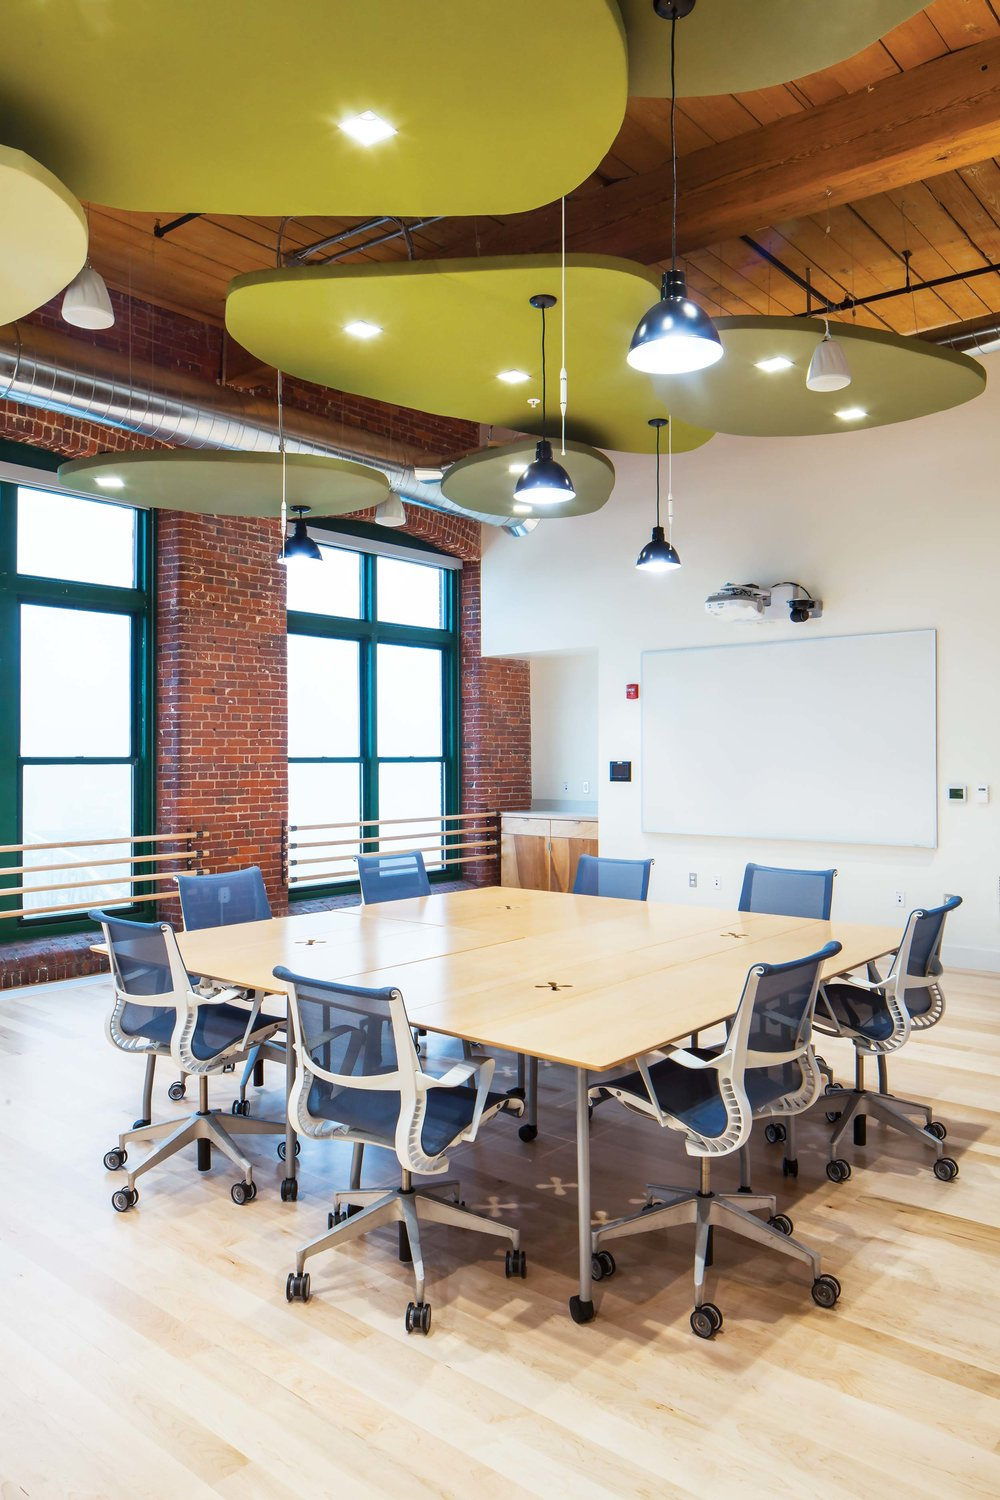 In the main conference room, leaf-shaped panels fitted with LED lights help to illuminate the space and absorb sound.